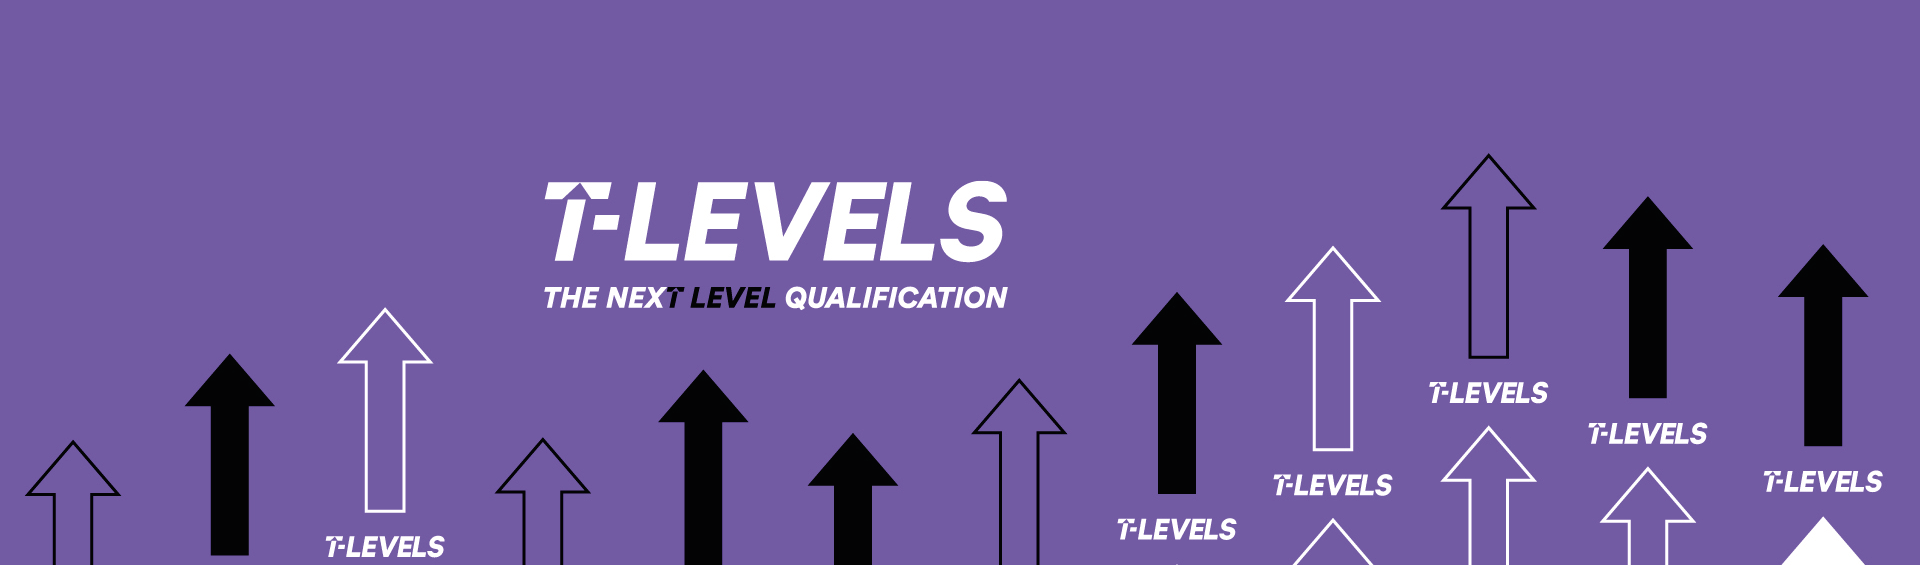 Wirral Met is introducing T Level qualifications in 2021. Red T Level branding by The Department of Education